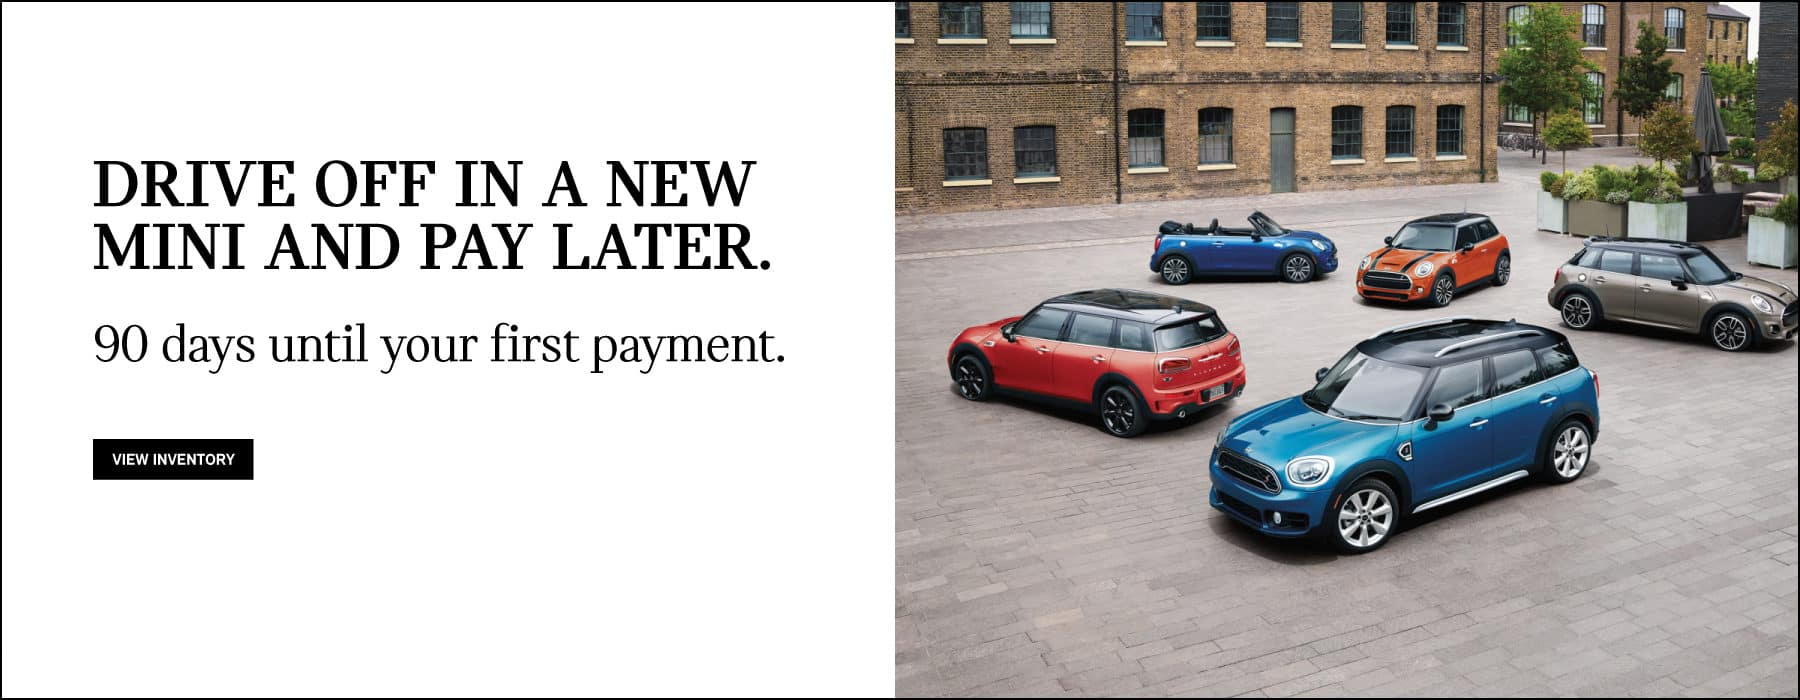 drive off in a new mini with 90 days until your first payment.